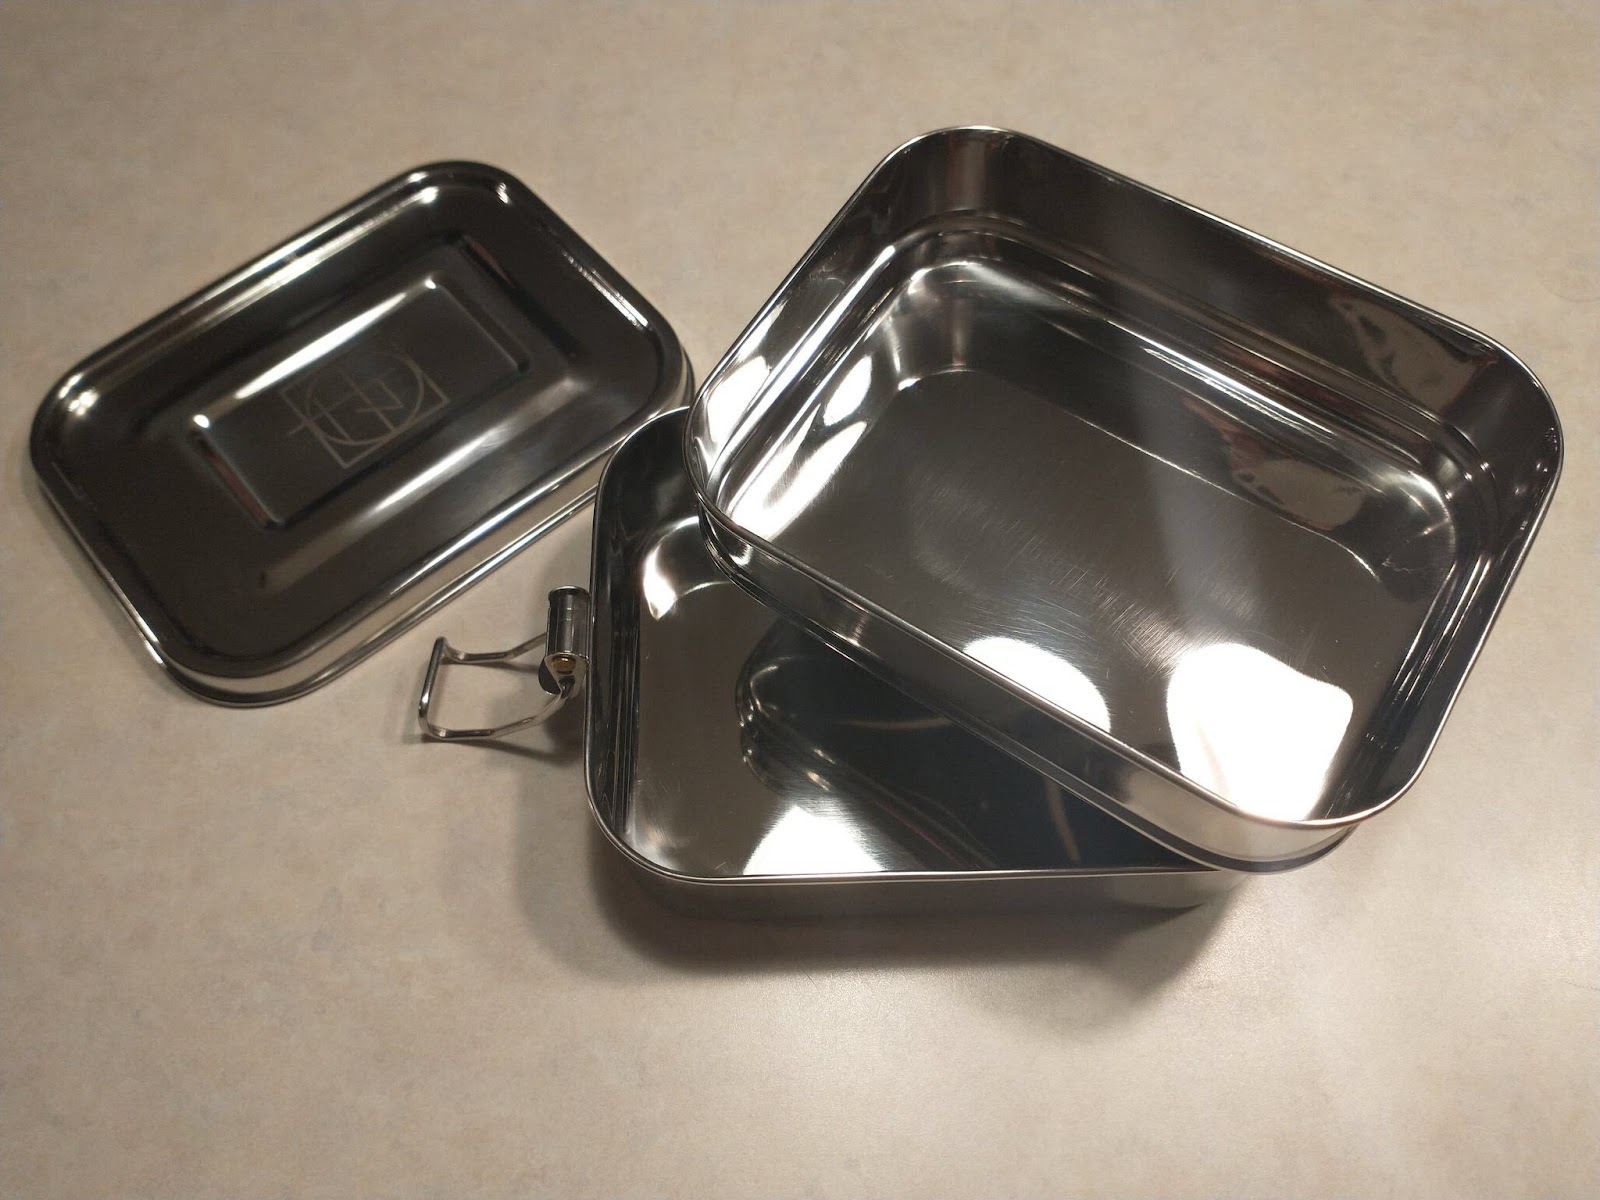 Stainless steel bento-style lunch box with two layers